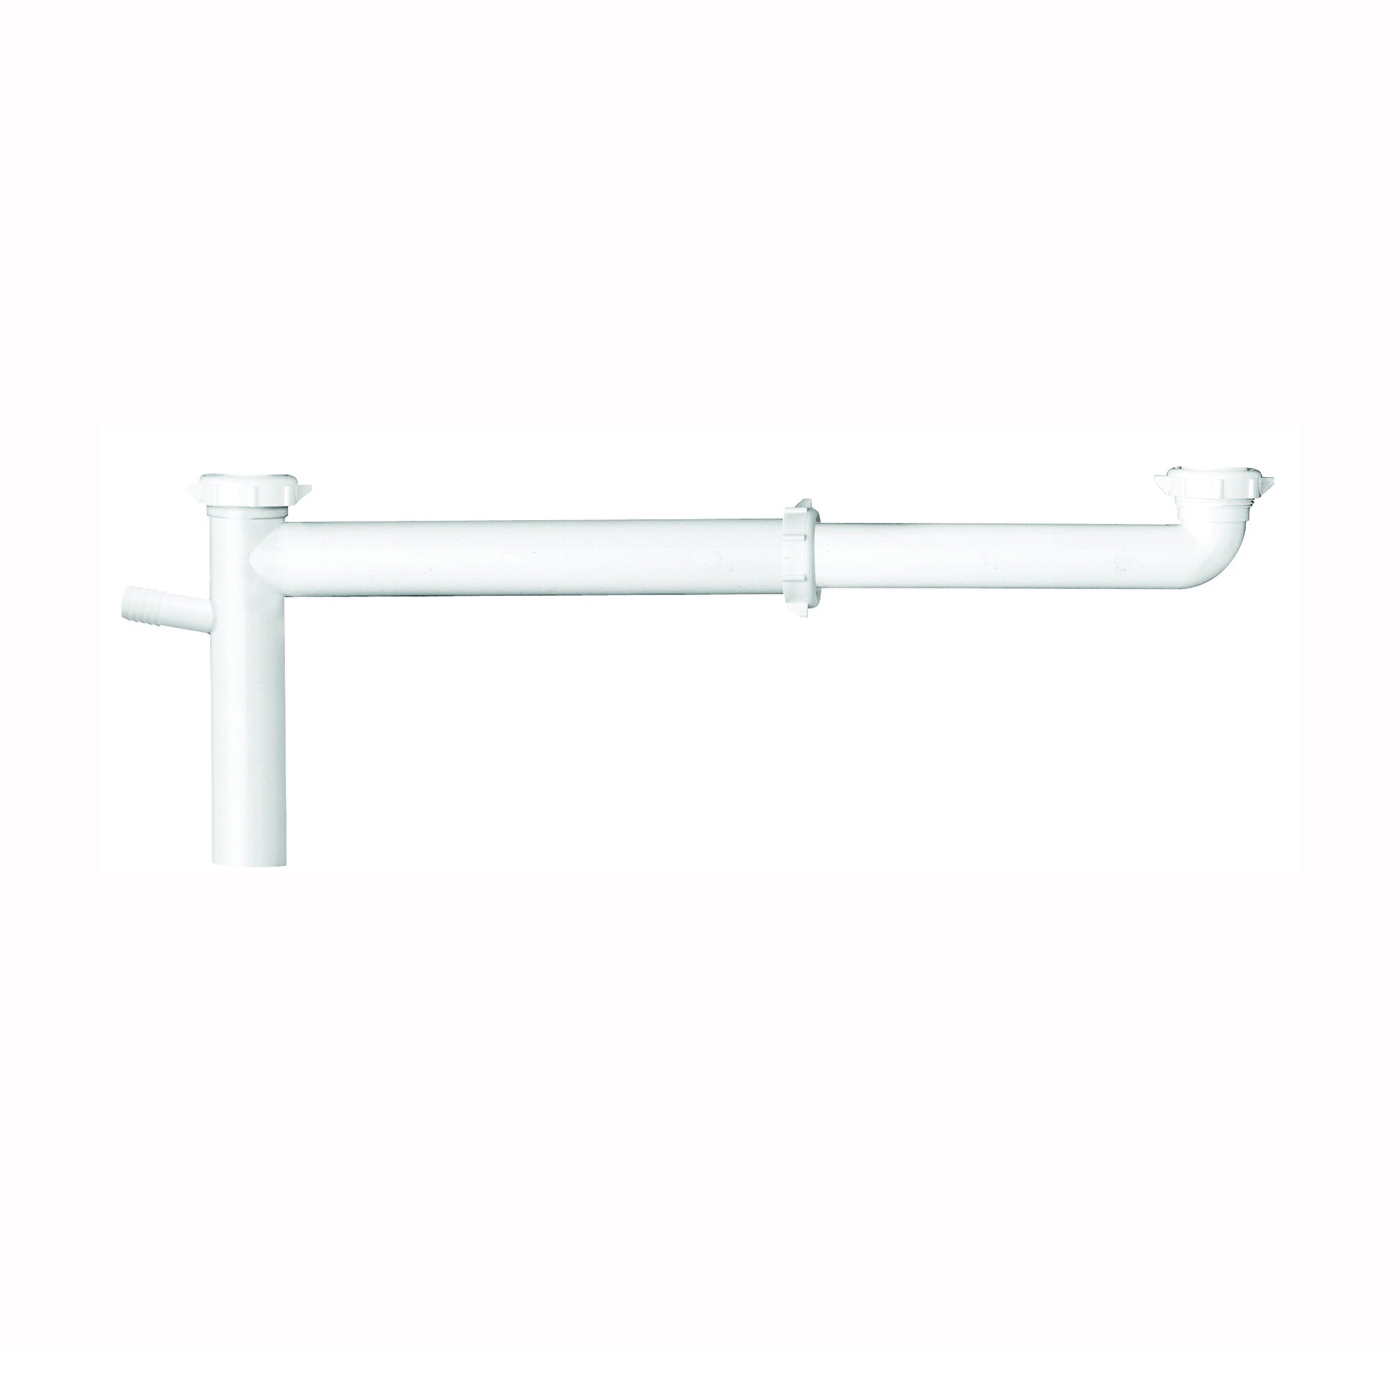 Picture of Plumb Pak PP919W End Waste Outlet, 1-1/2 in, Slip Joint, Plastic, White